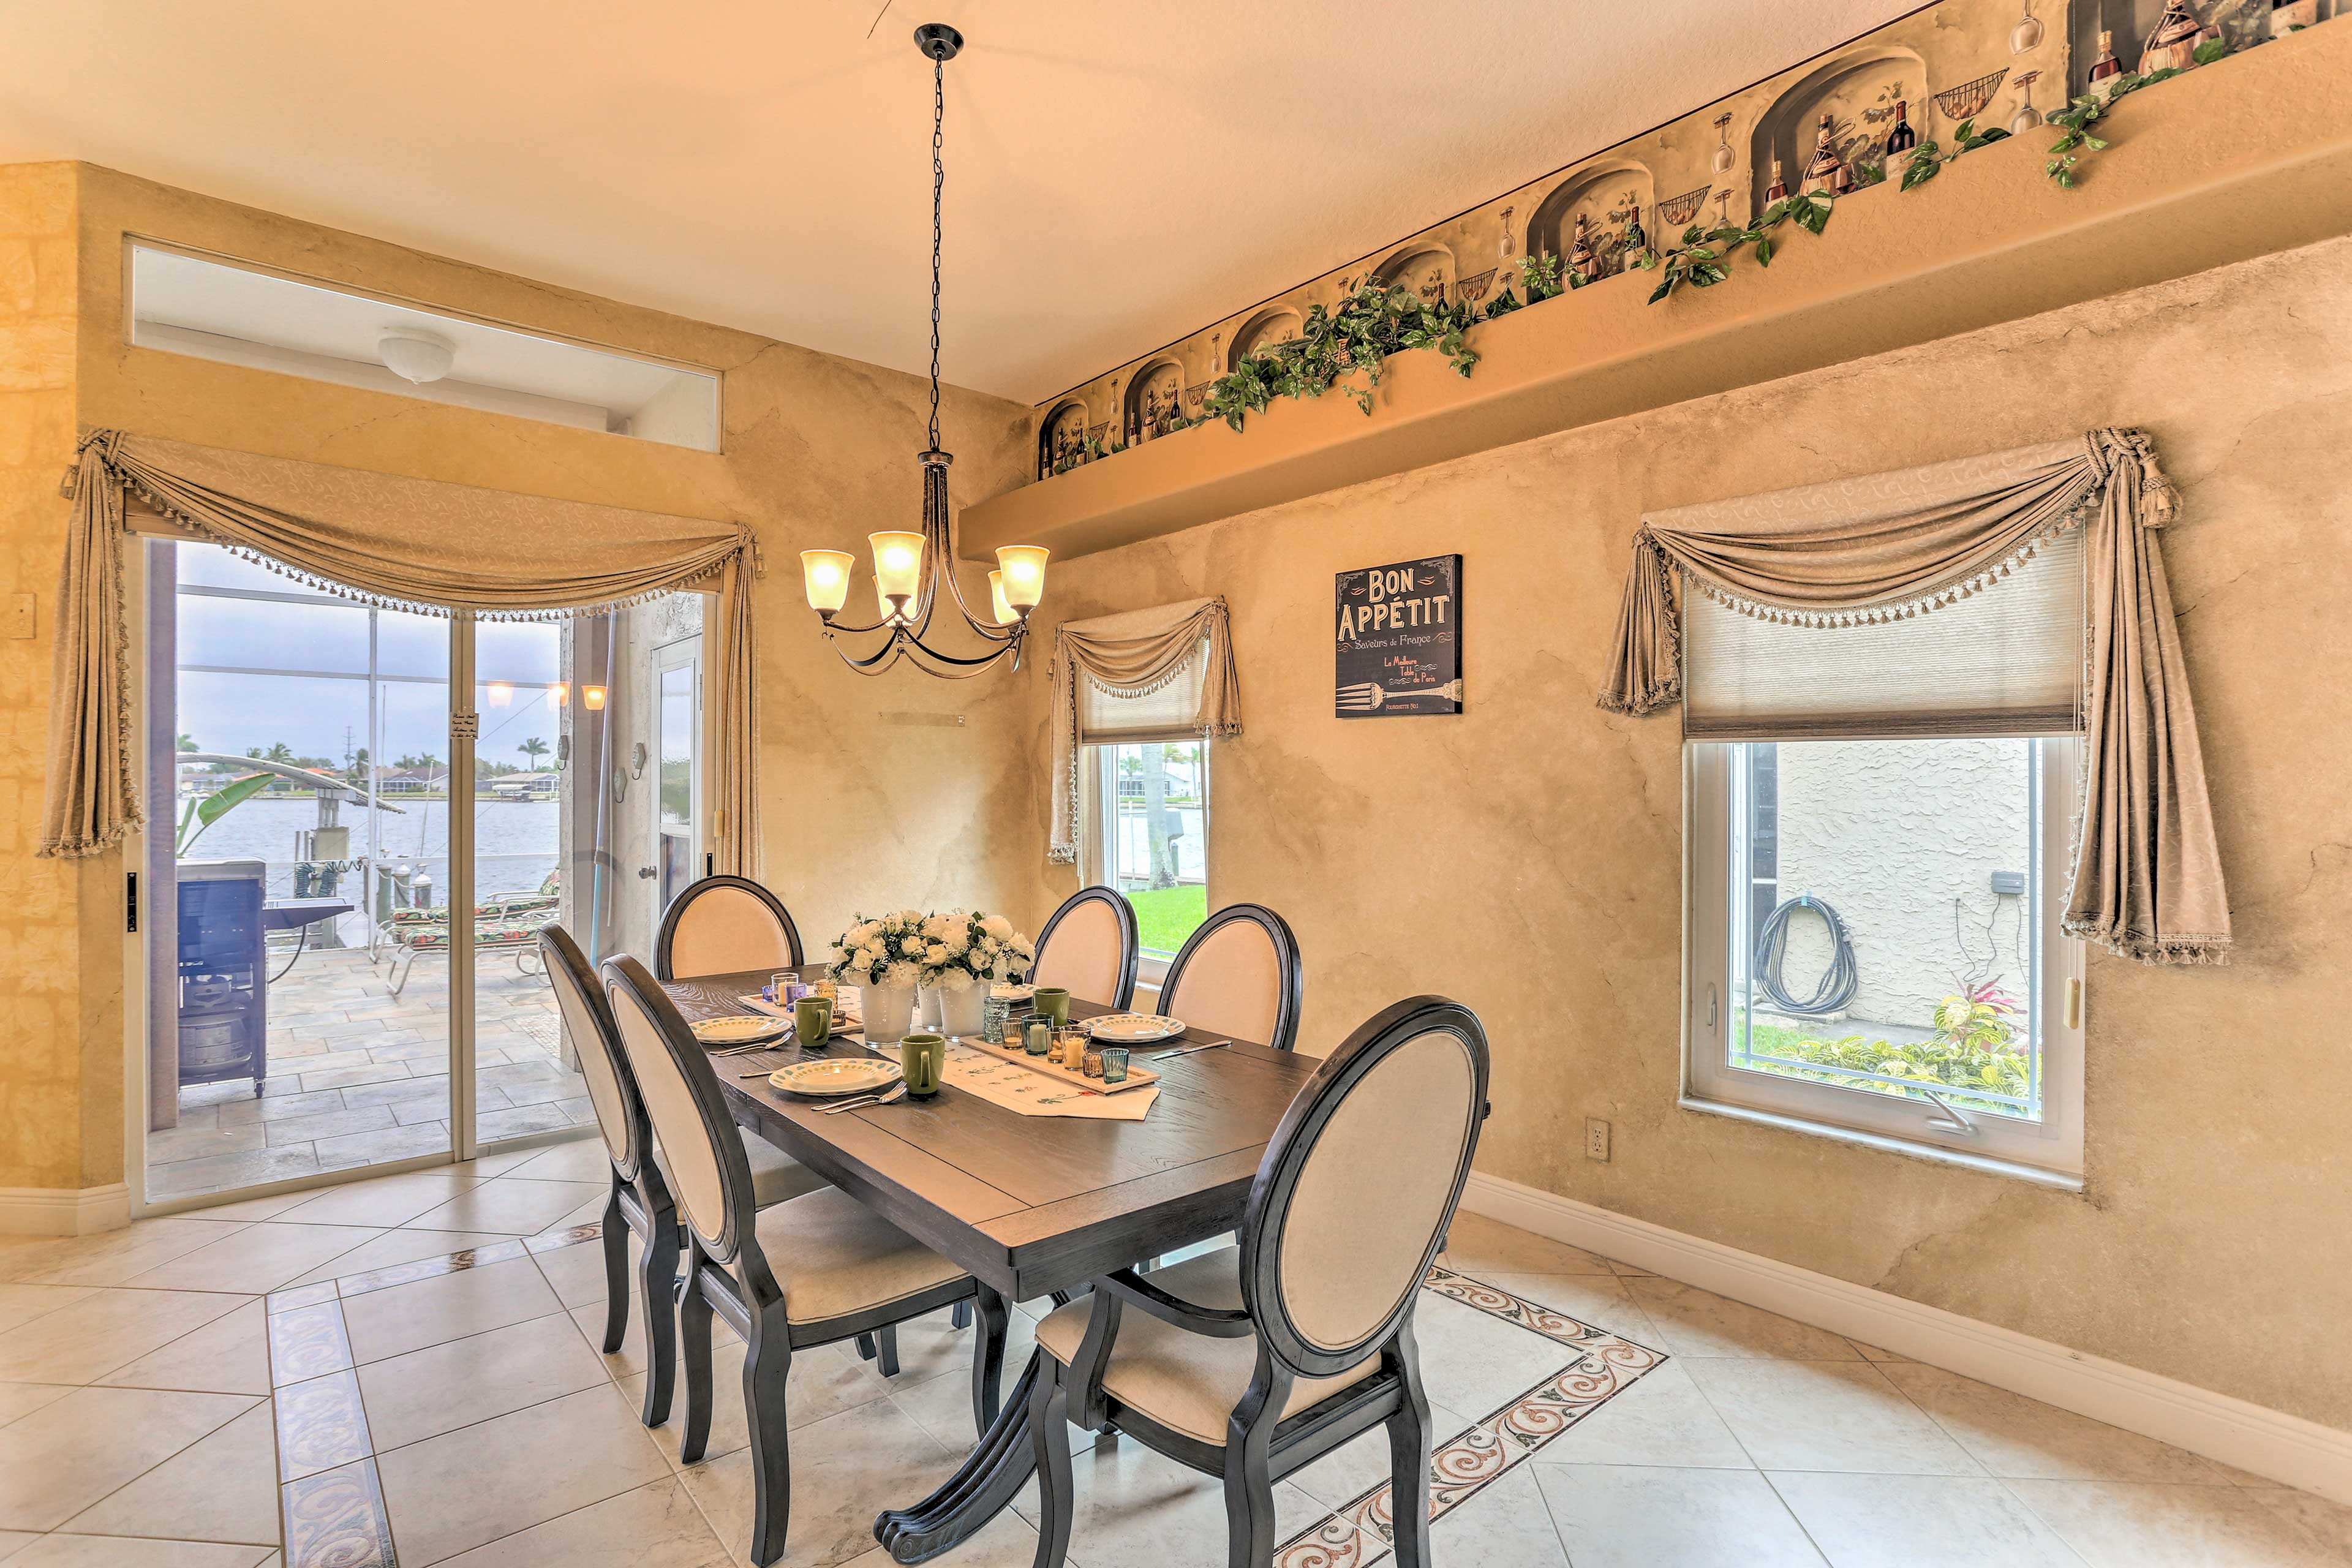 The formal dining room offers seating for 8 guests.